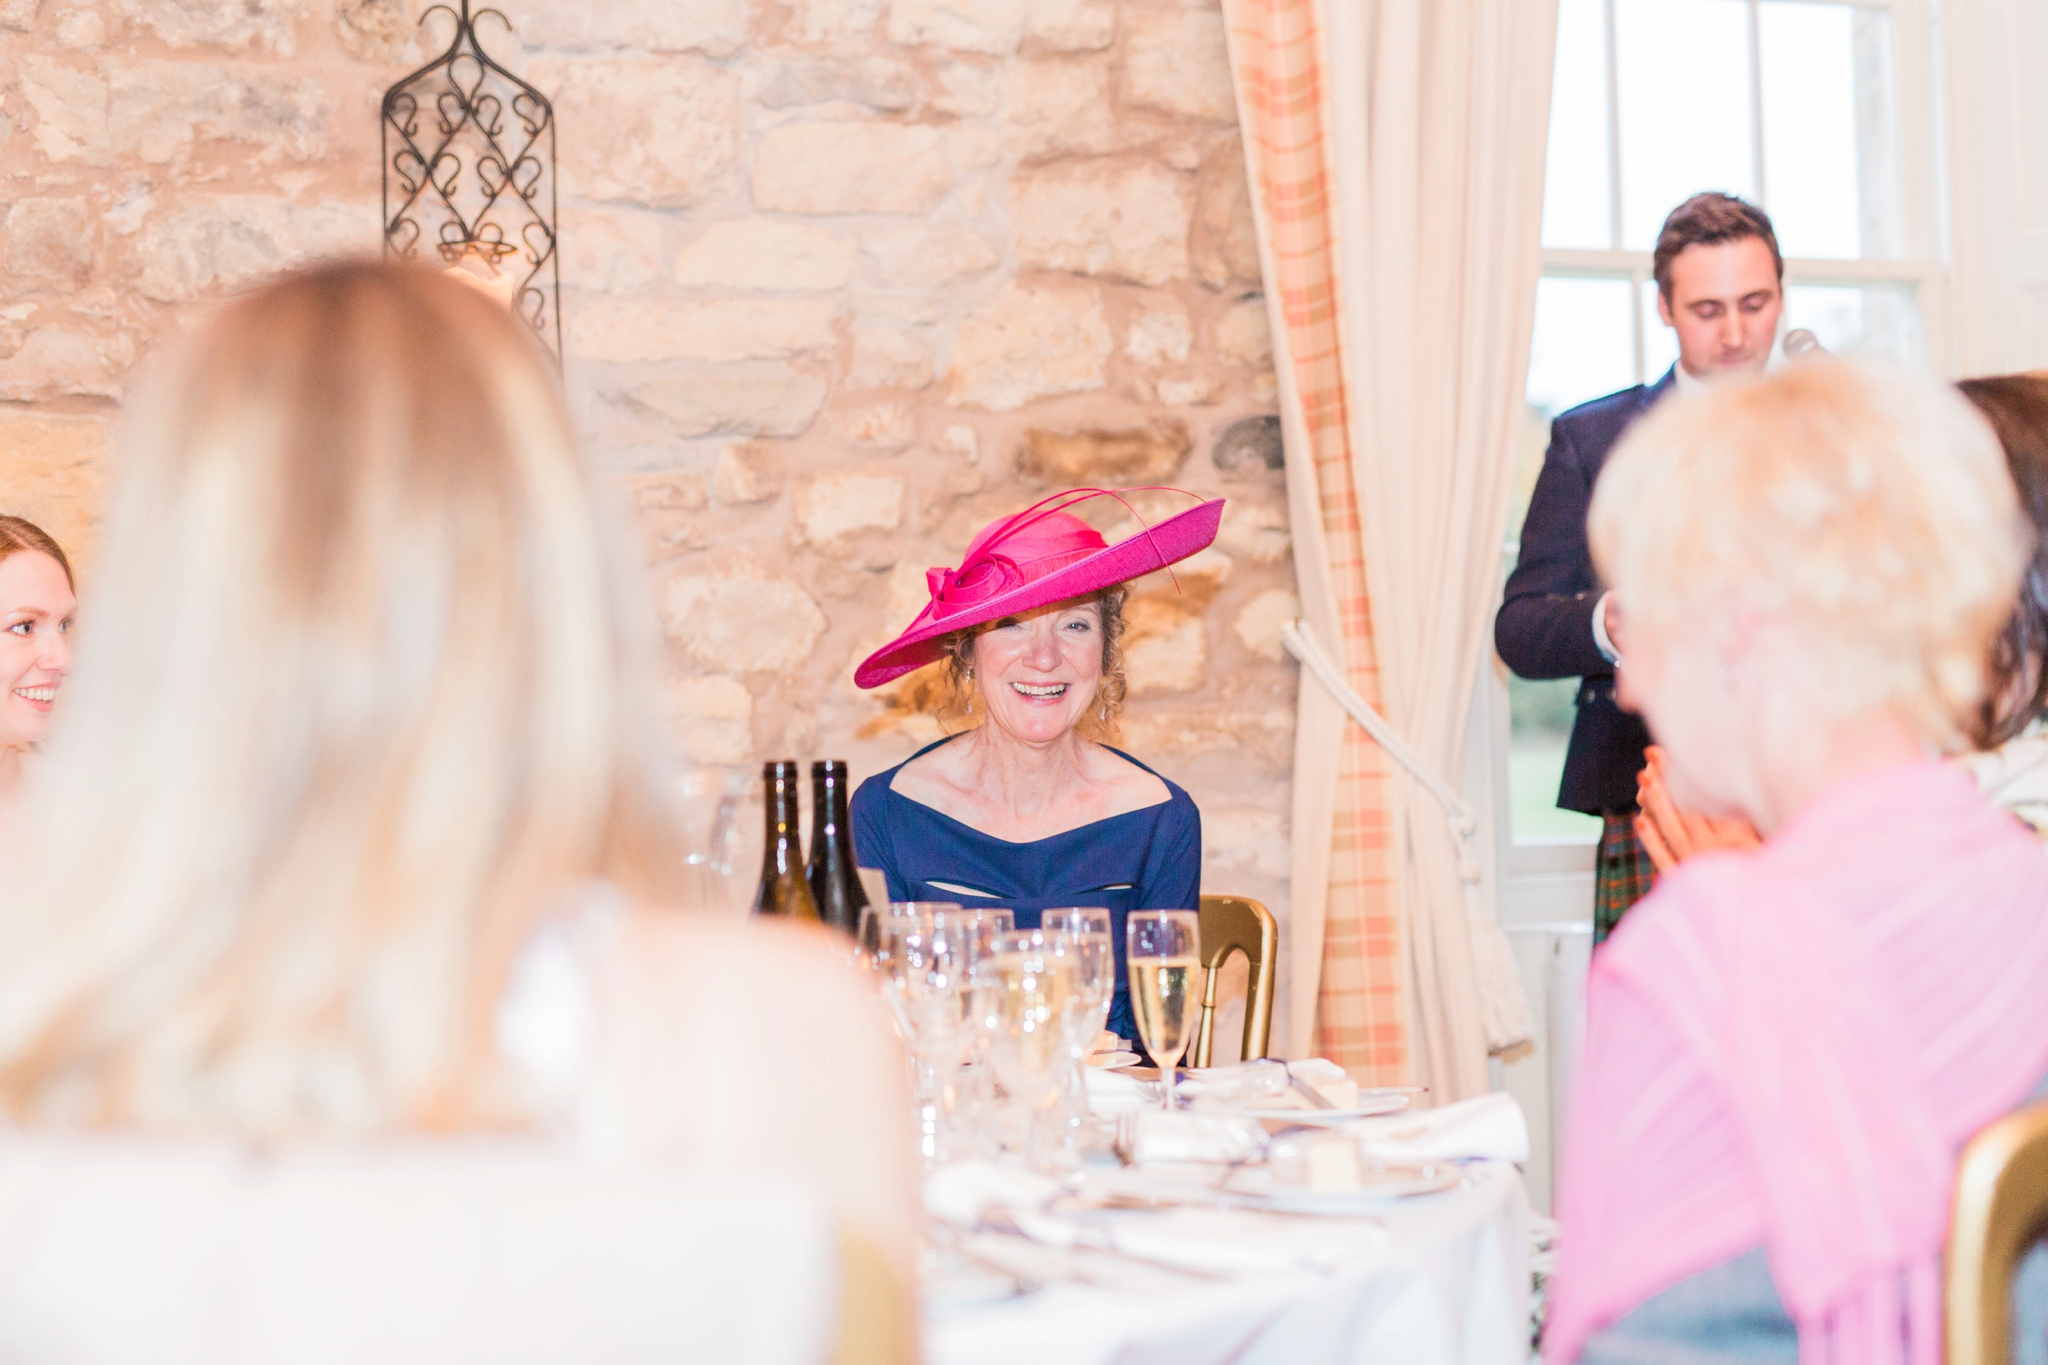 Suzanne_li_photography_kirknewton_wedding_0063.jpg